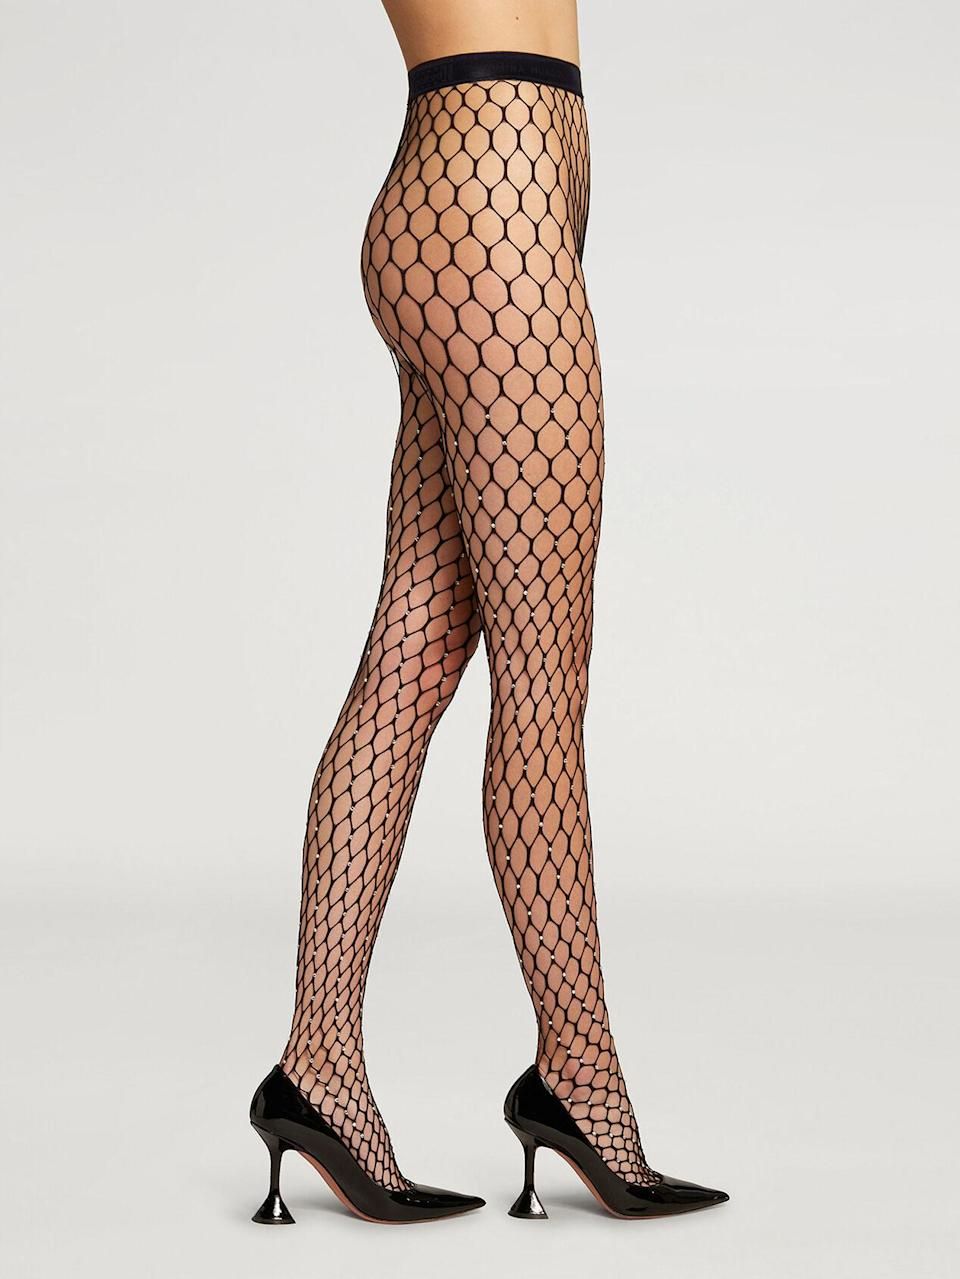 Courtesy of Wolford.